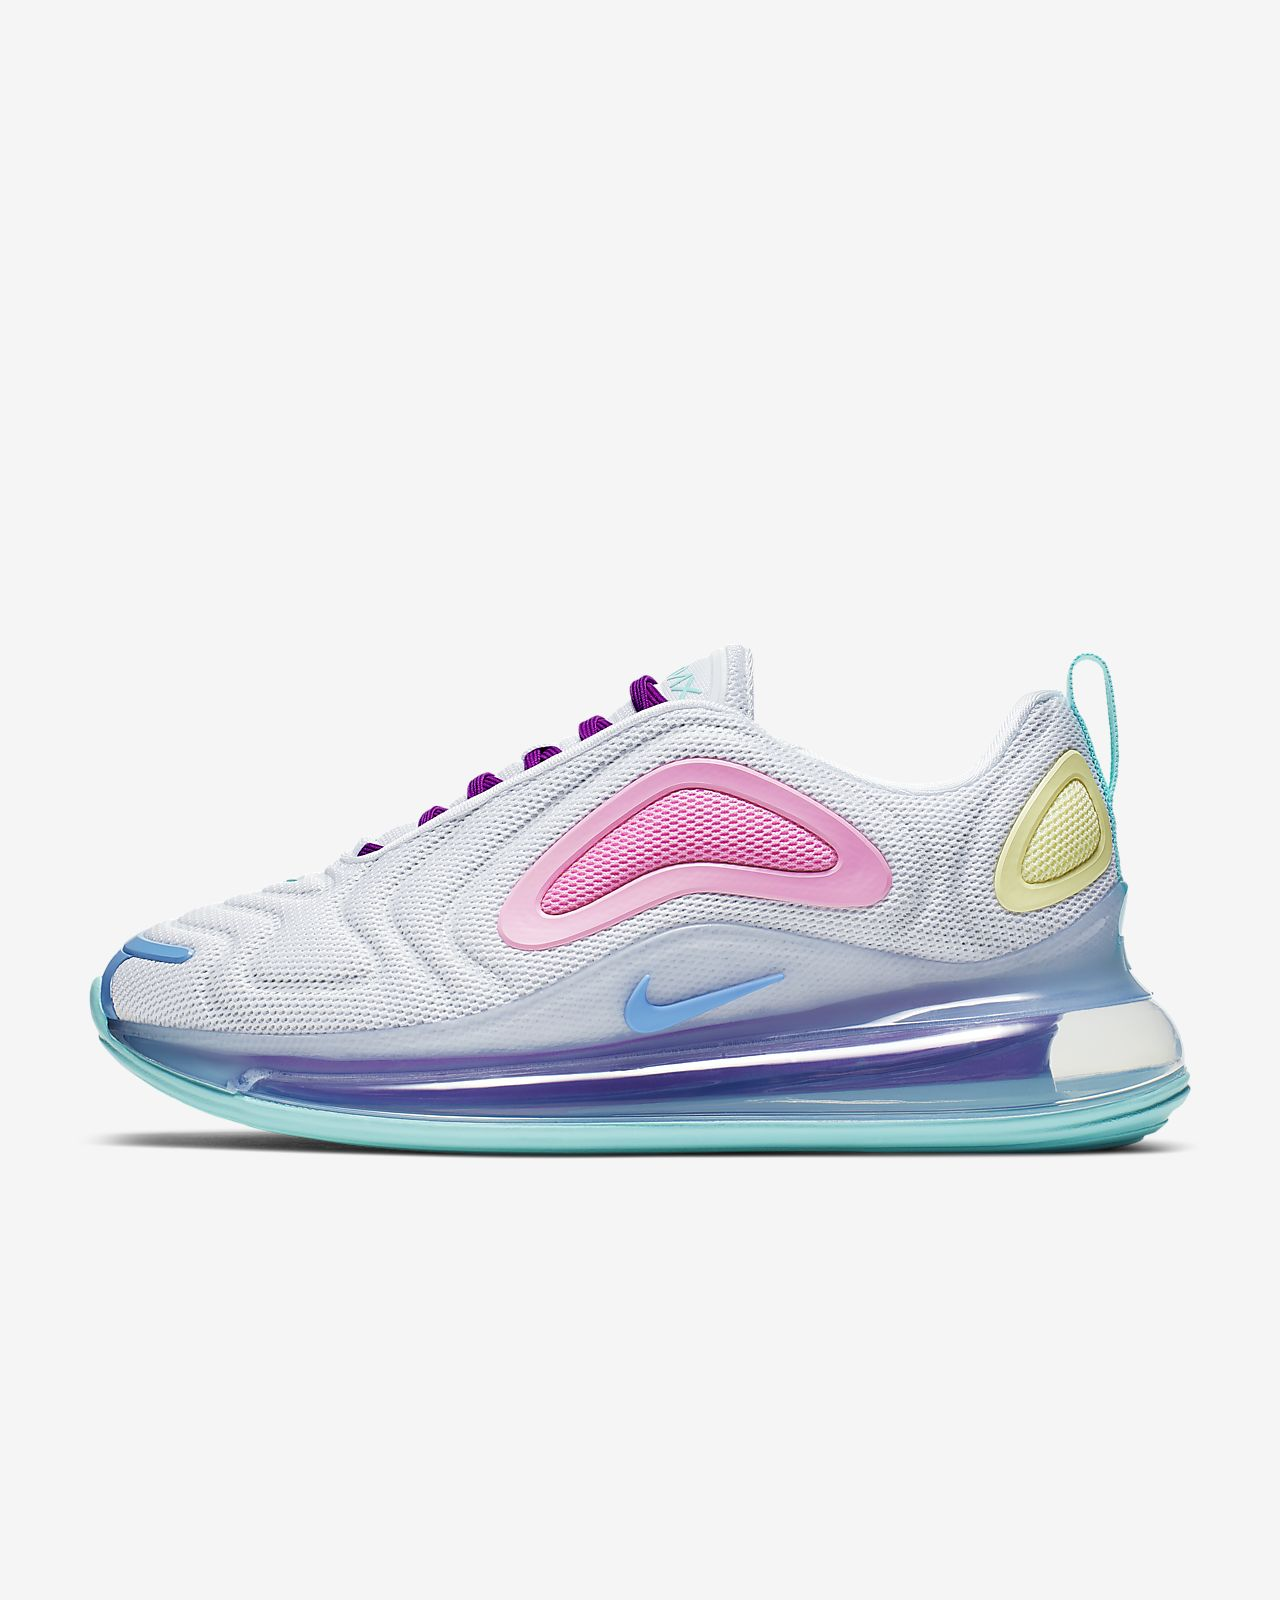 Nike Air Max 720 Damenschuh